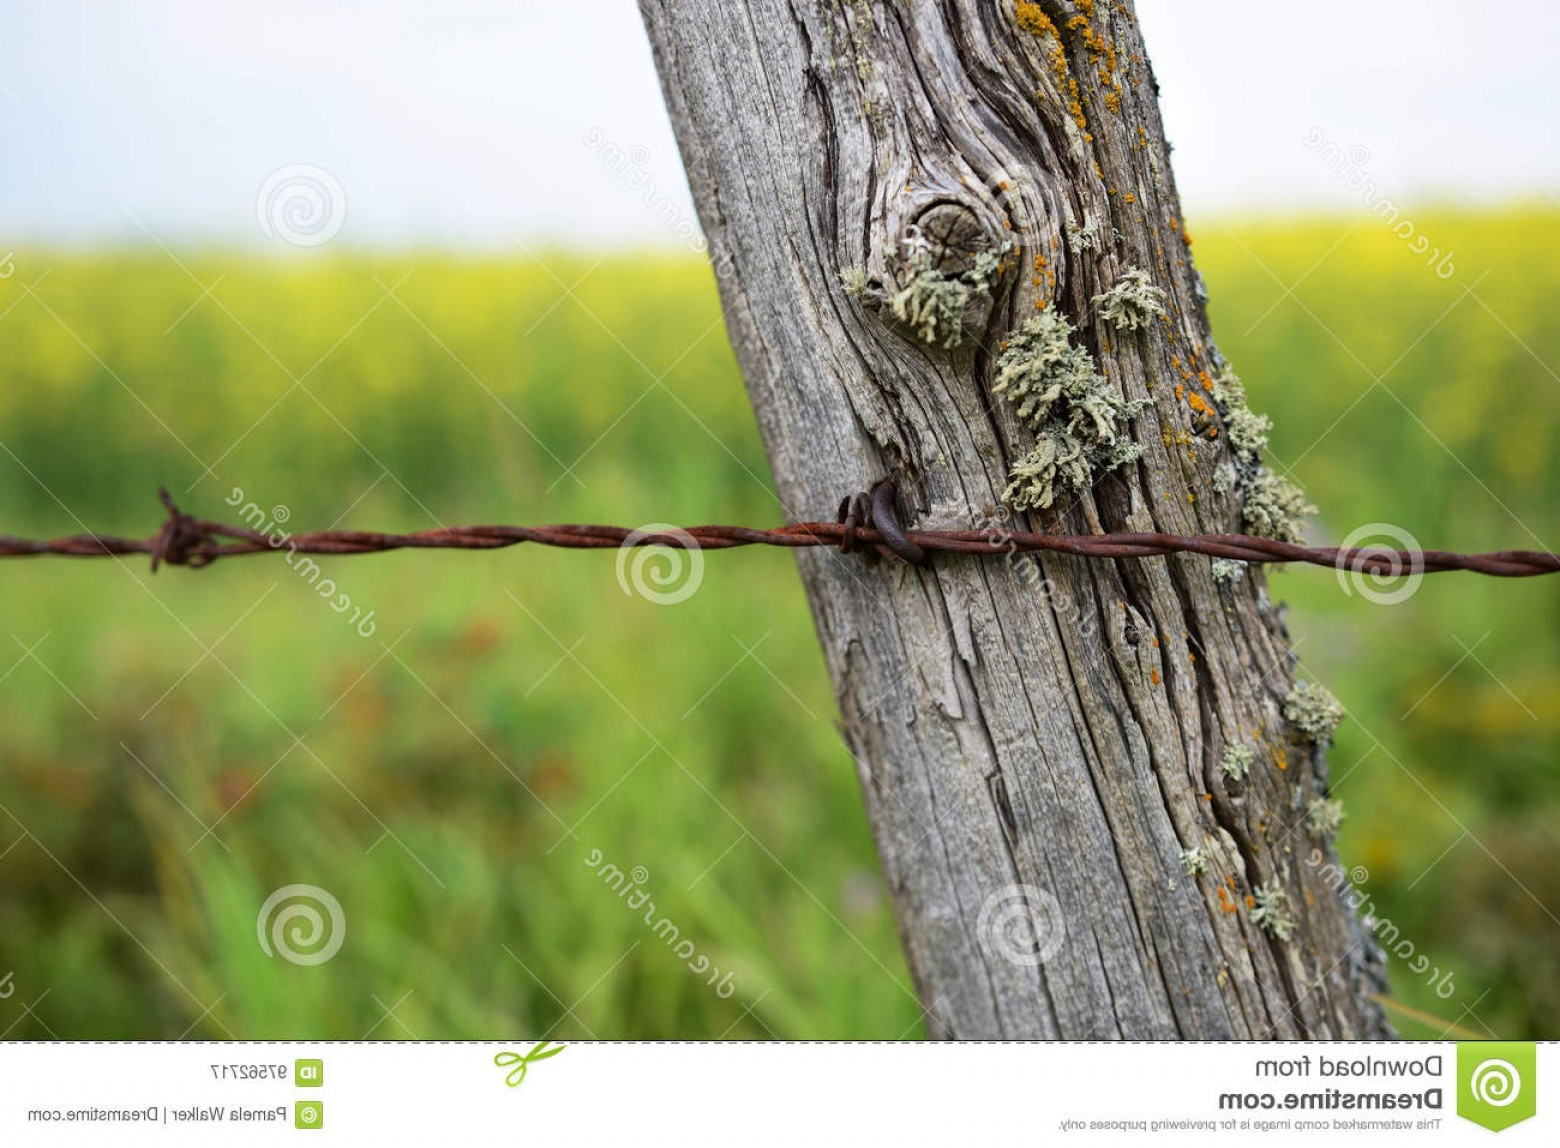 Fence Post Barbed Wire Vector Clip Art: Stock Photo Old Fence Post Barbed Wire Image Rusted Image